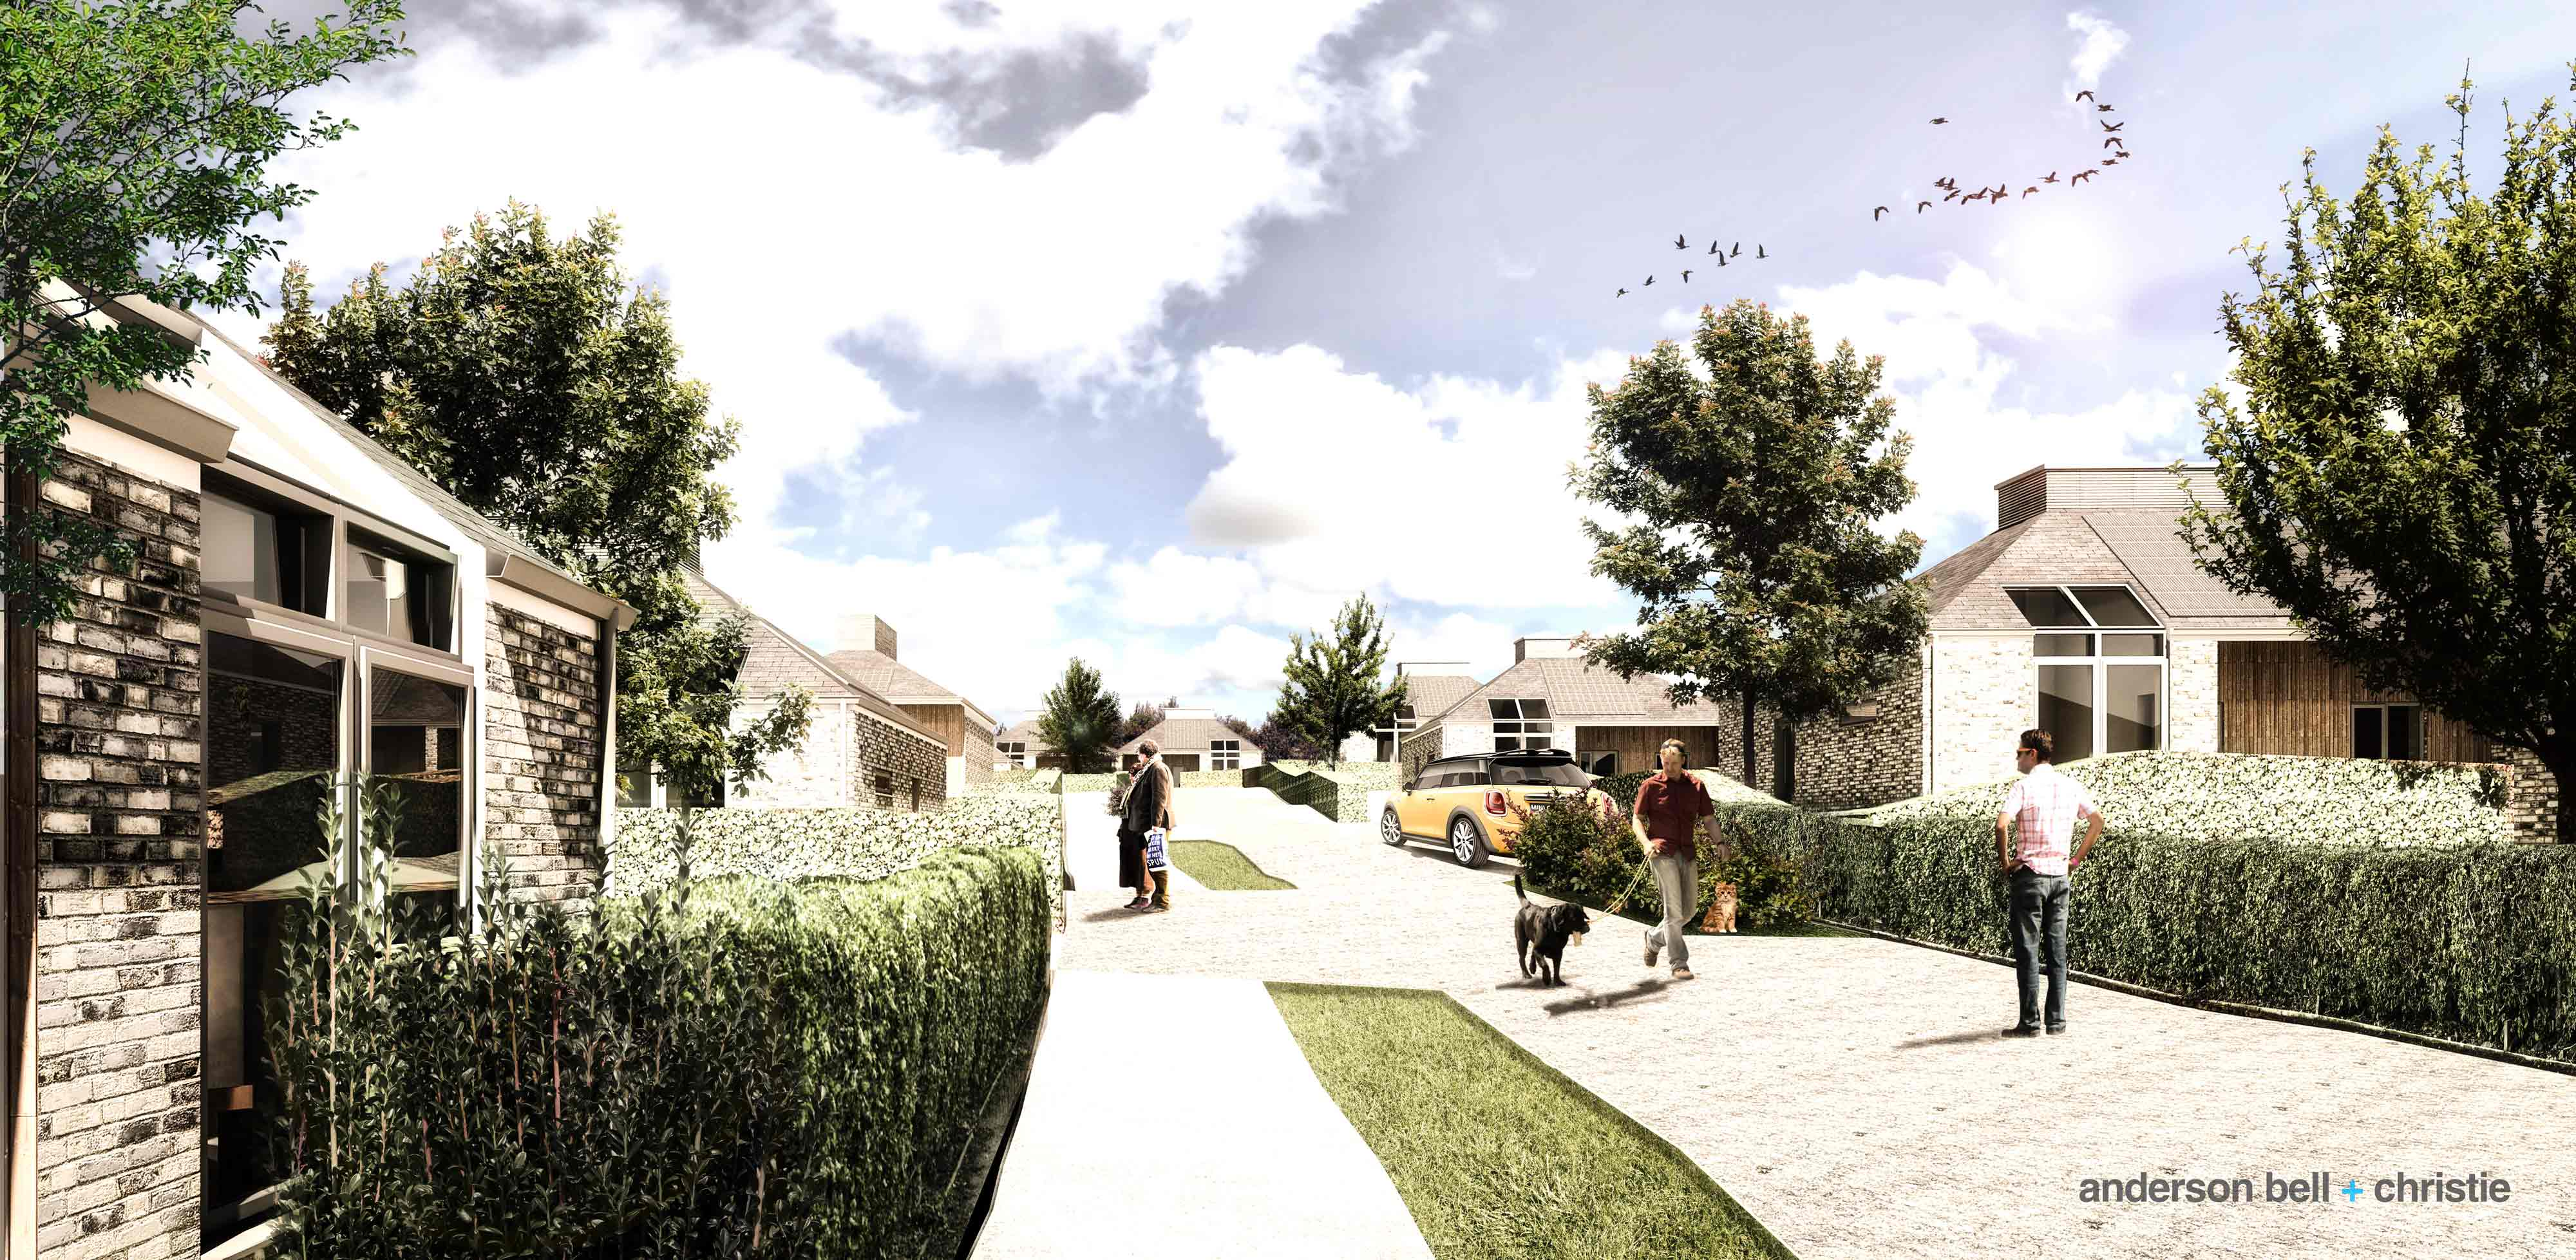 Architects impression of the new neighbourhood at Gannochy Estate.